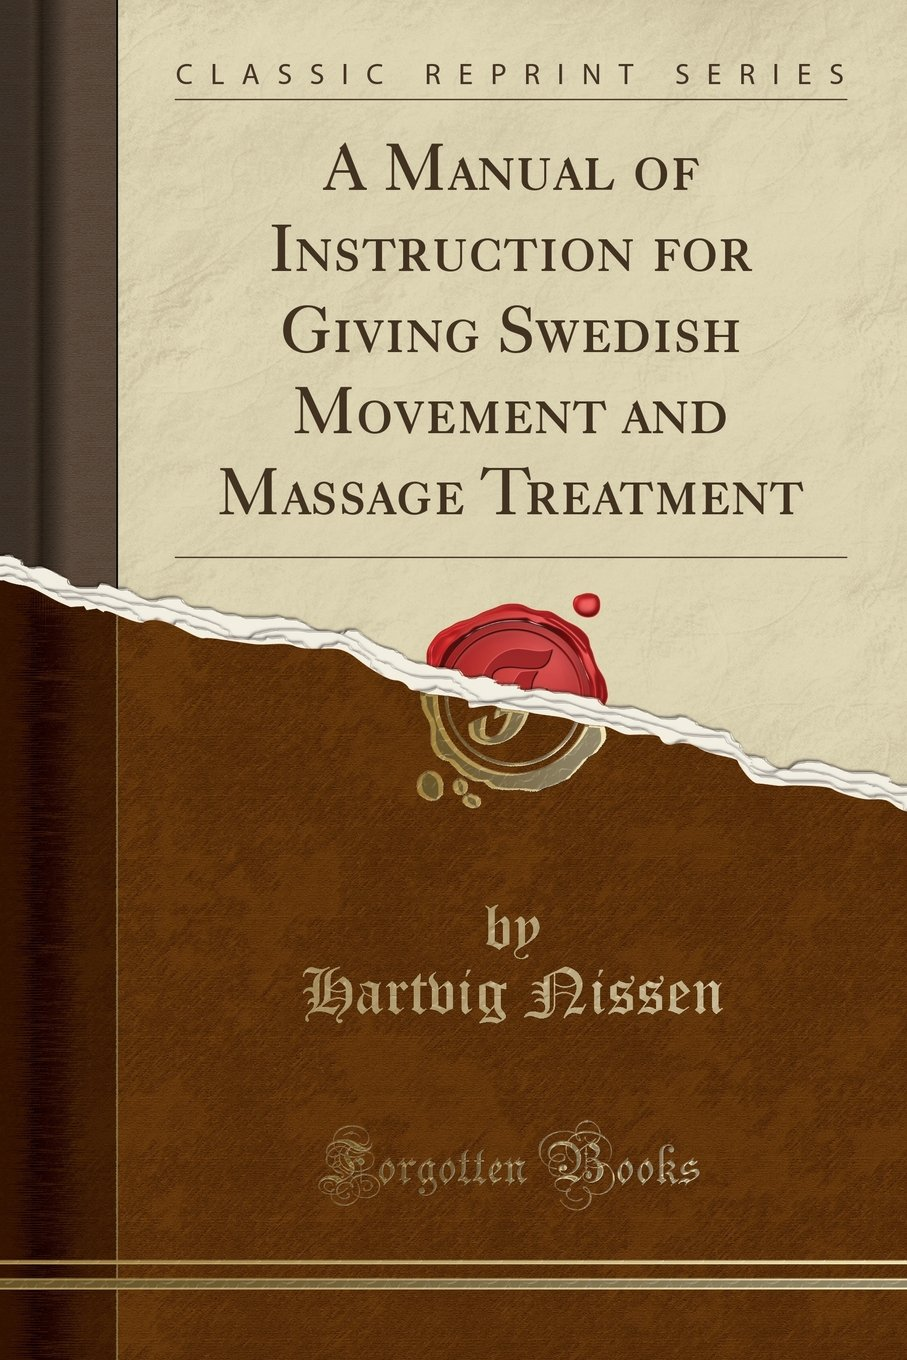 Buy A Manual of Instruction for Giving Swedish Movement and Massage  Treatment (Classic Reprint) Book Online at Low Prices in India | A Manual  of Instruction ...